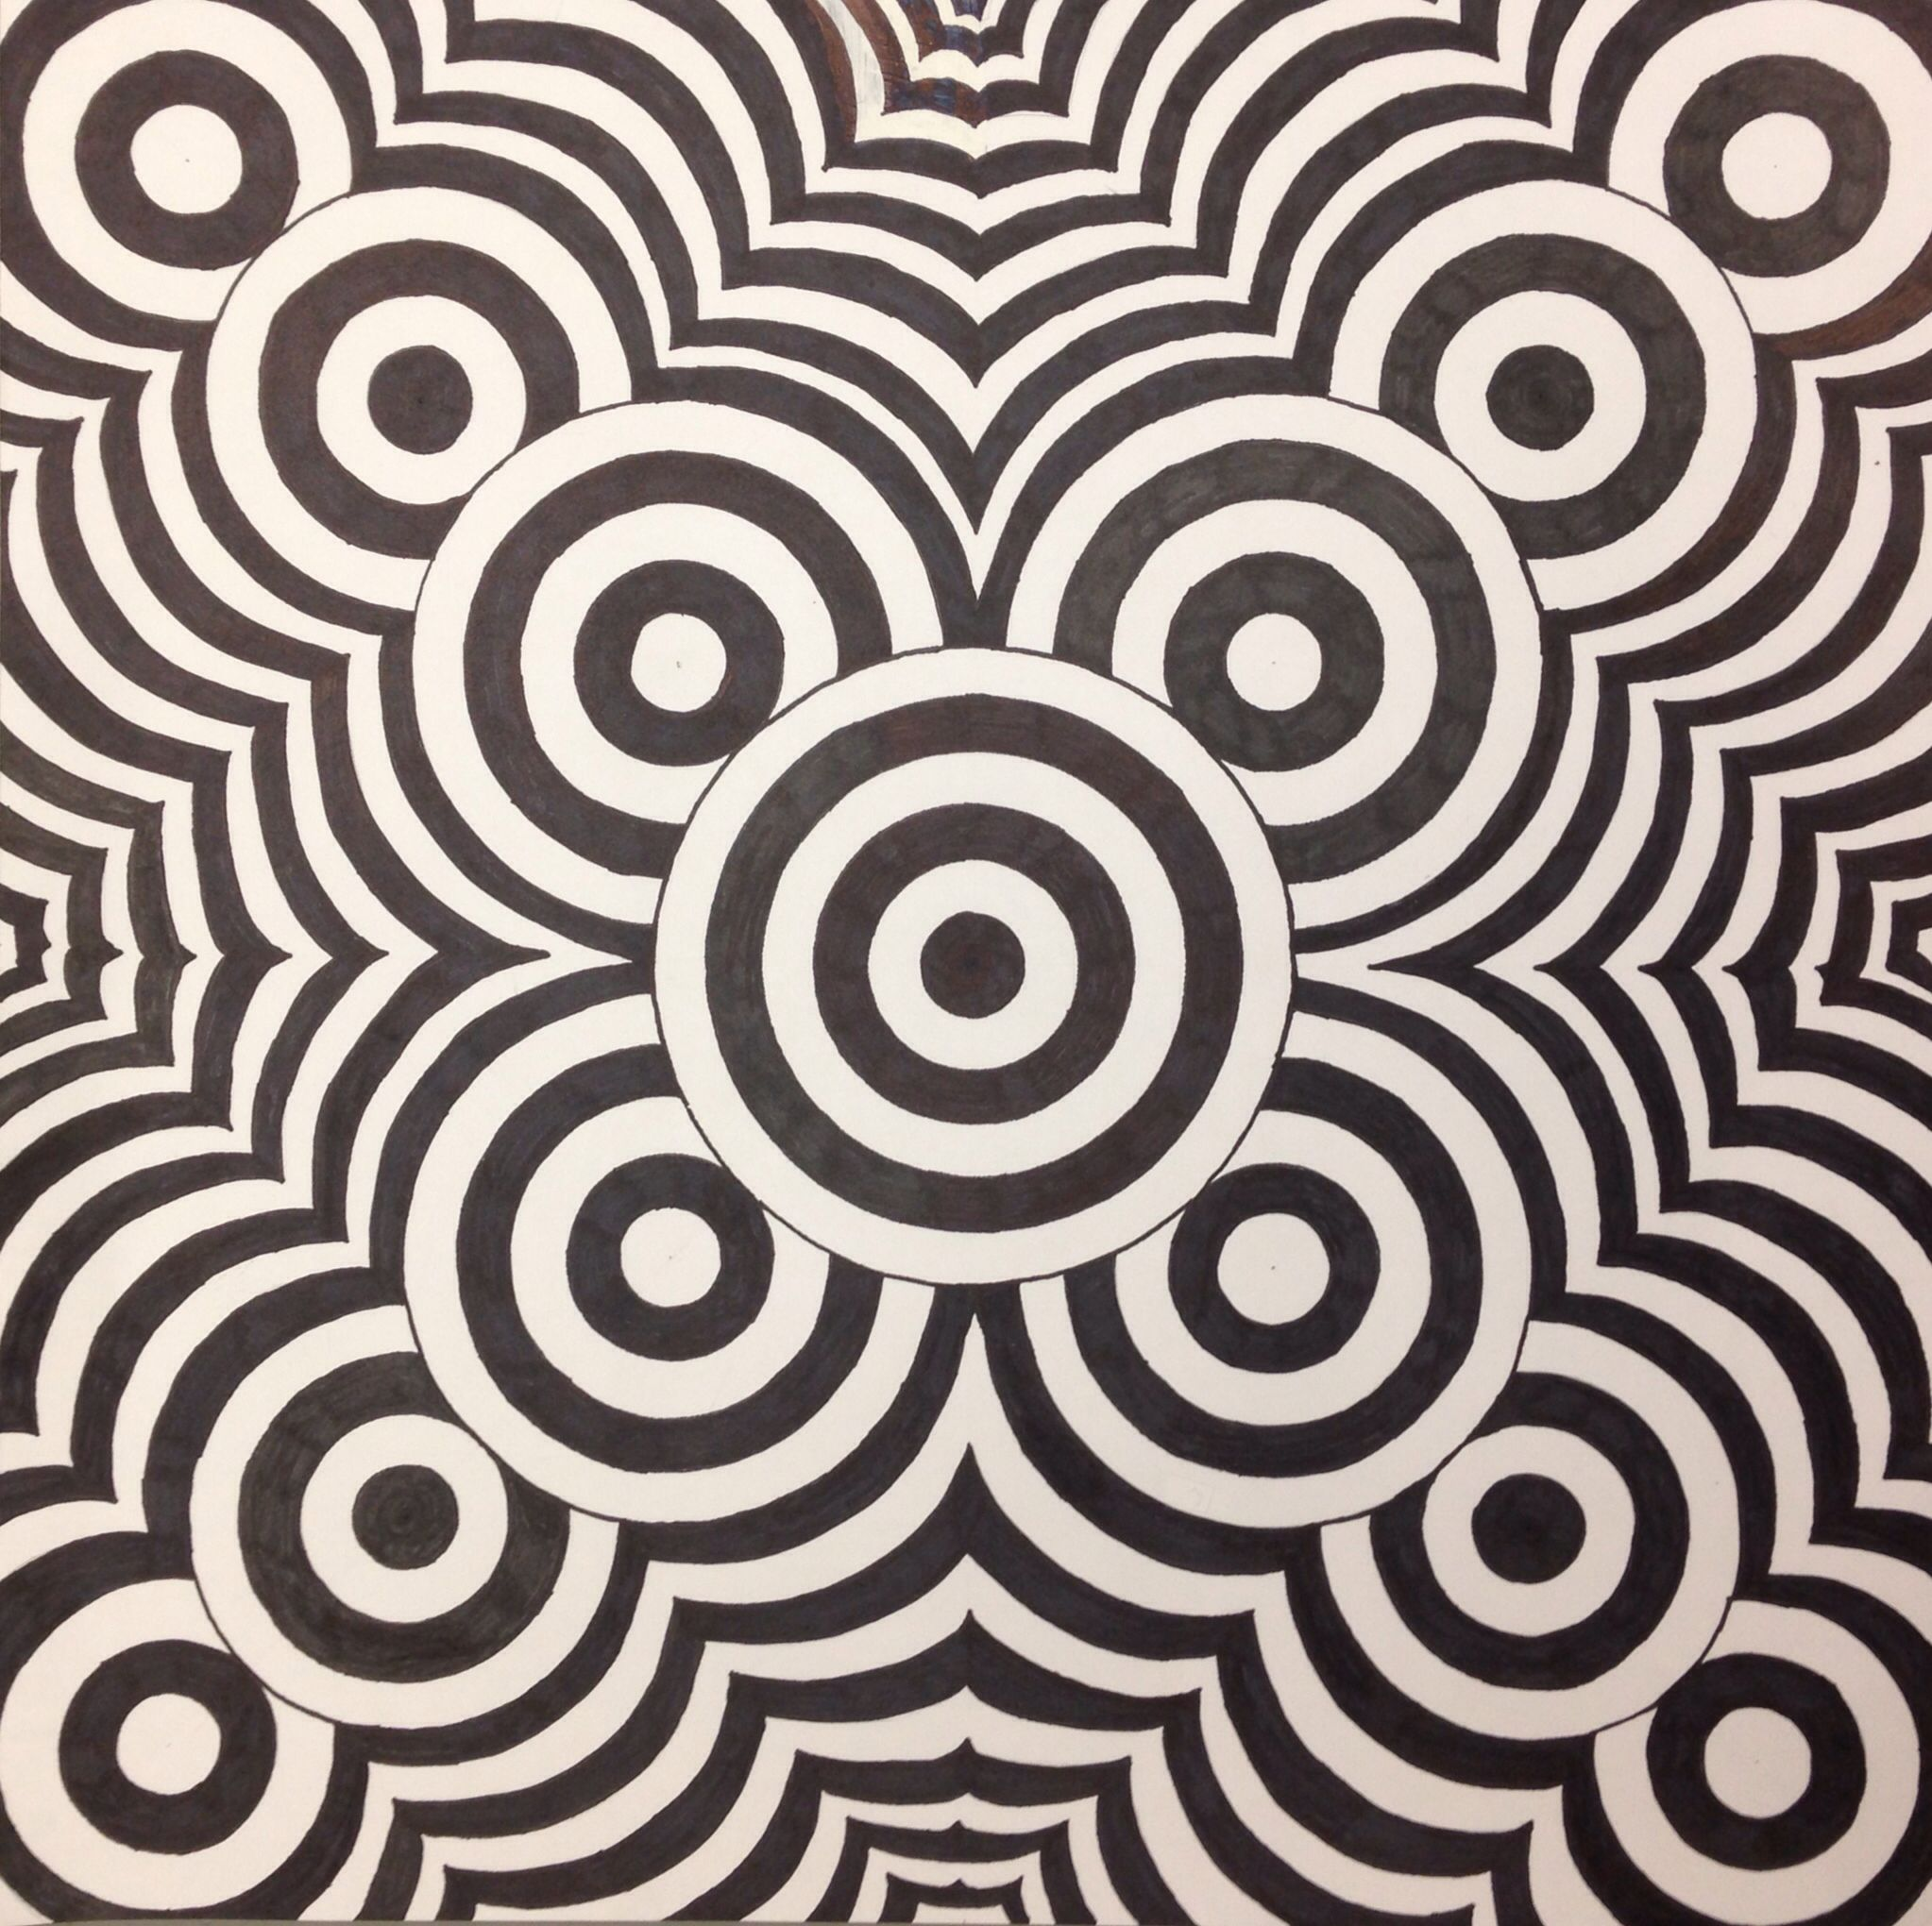 Op Art This Optical Illusion Was Made By One Of My Grade